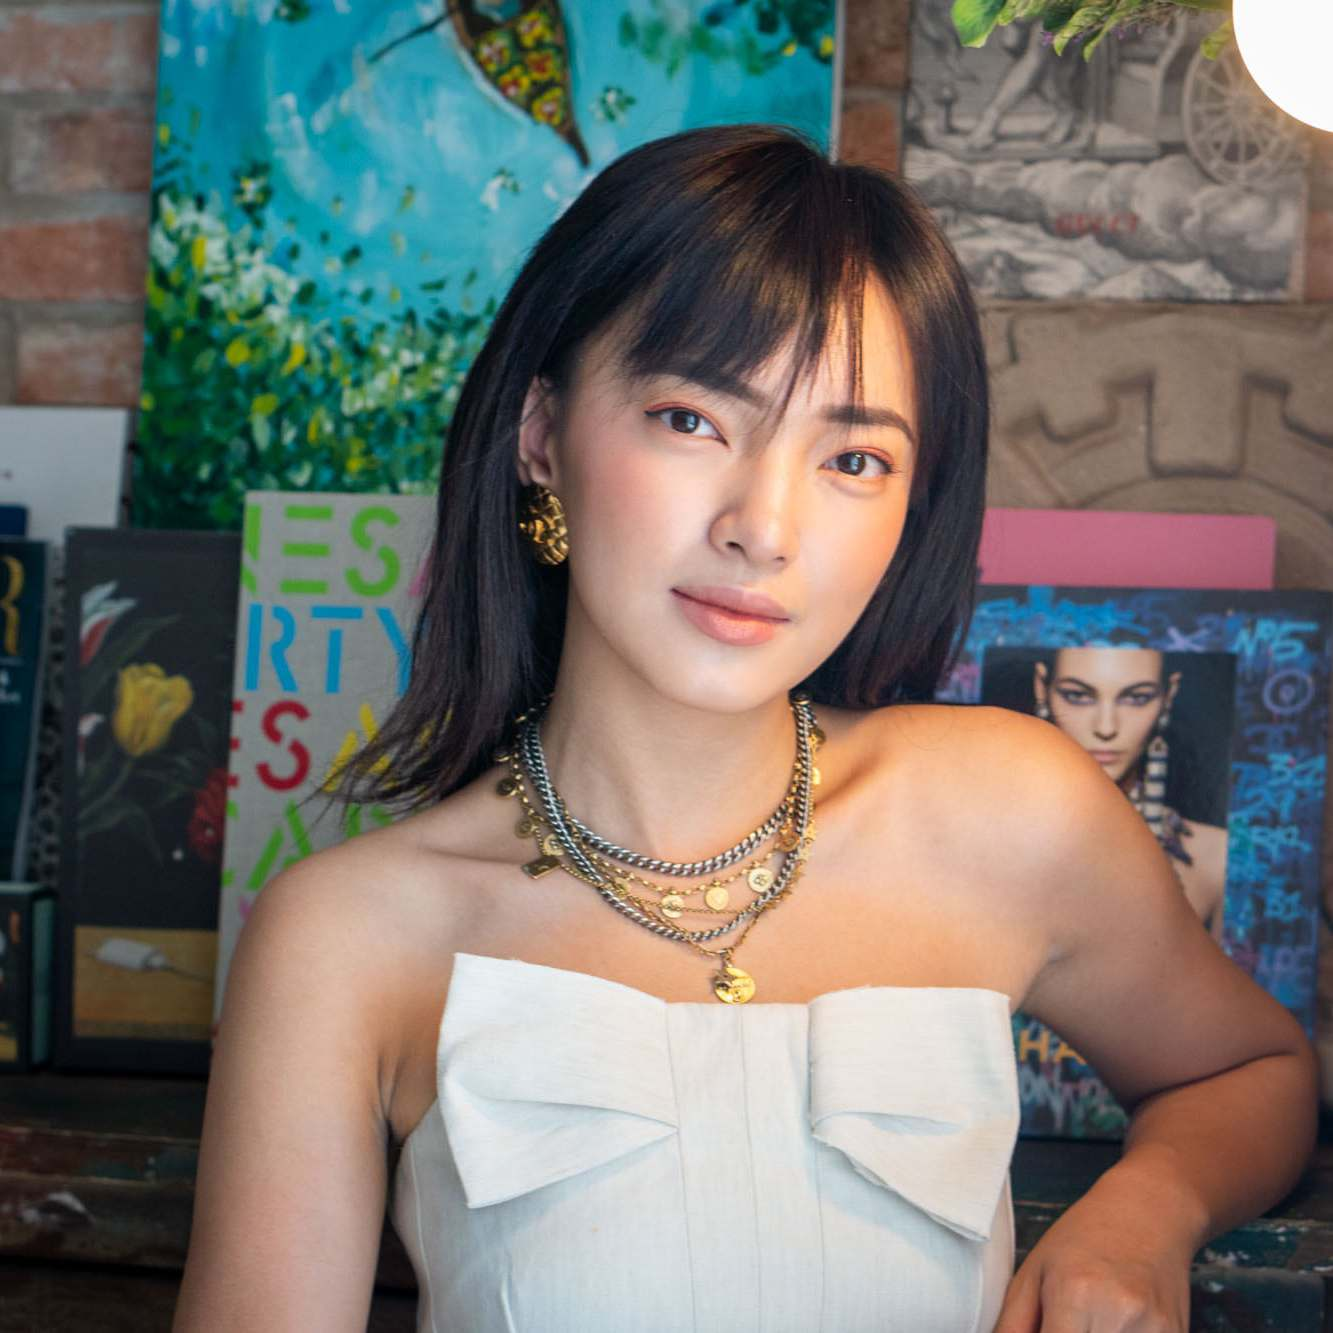 Fashion Model Chau Bui On Style And Authenticity